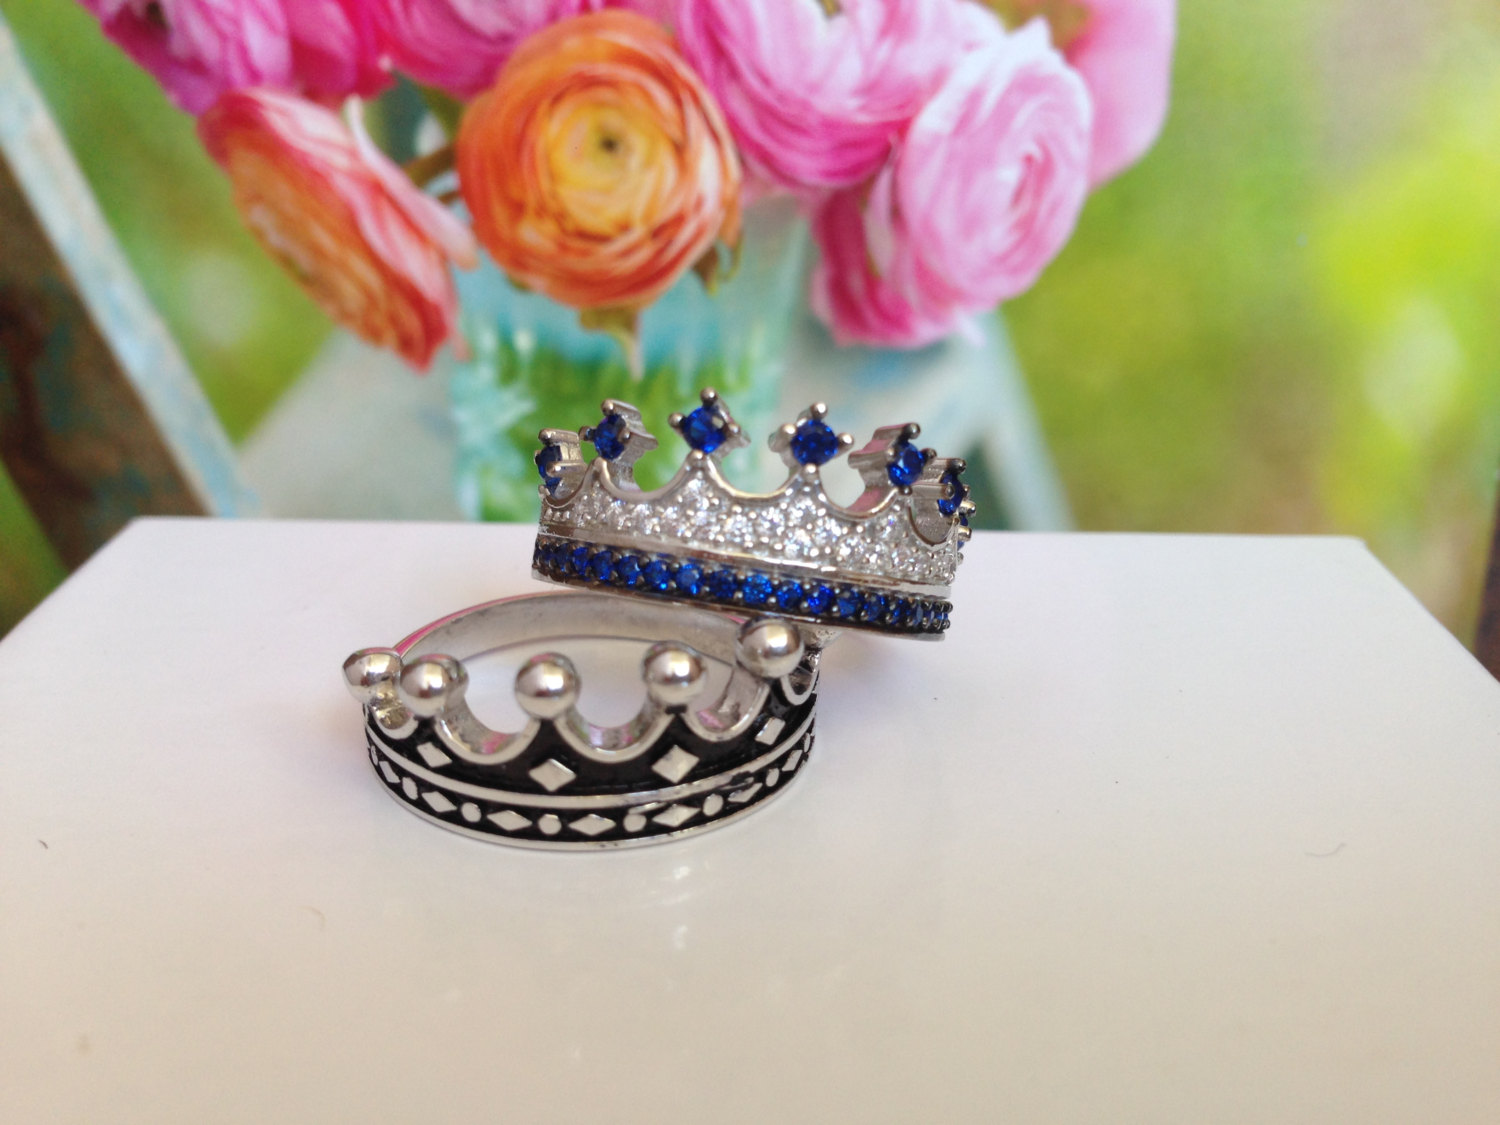 King & Queen ring, crown ring set,gold crown ring,sterling silver crown ring,promise rings,crown rings for women